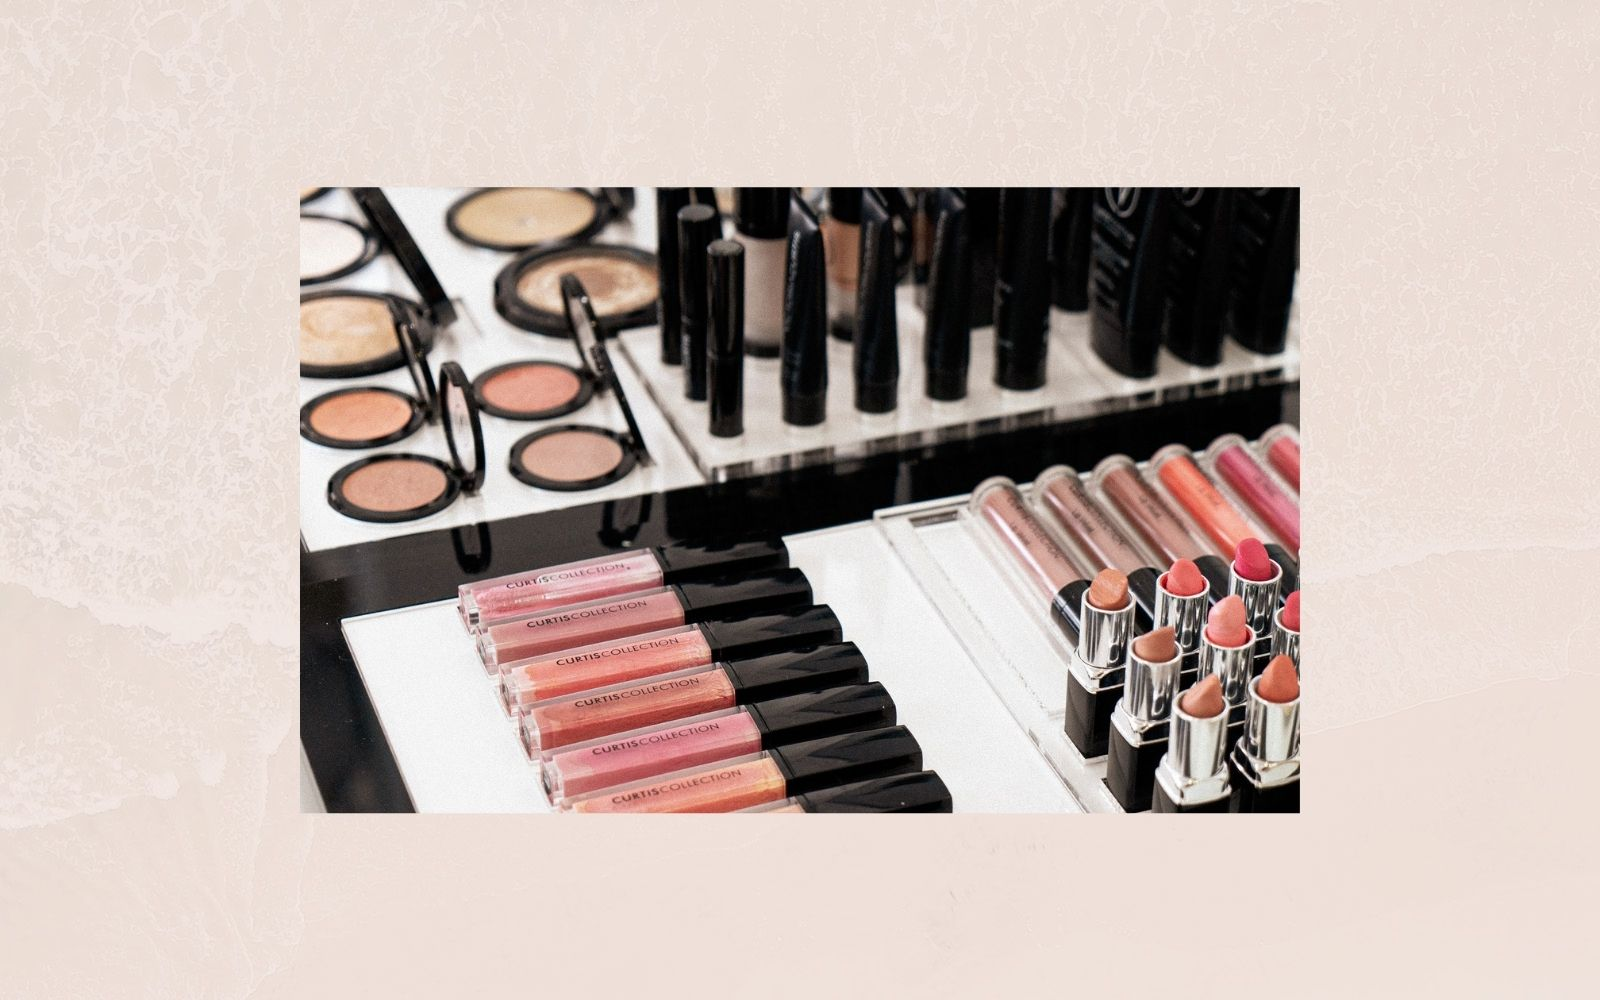 Non-comedogenic makeup for performers